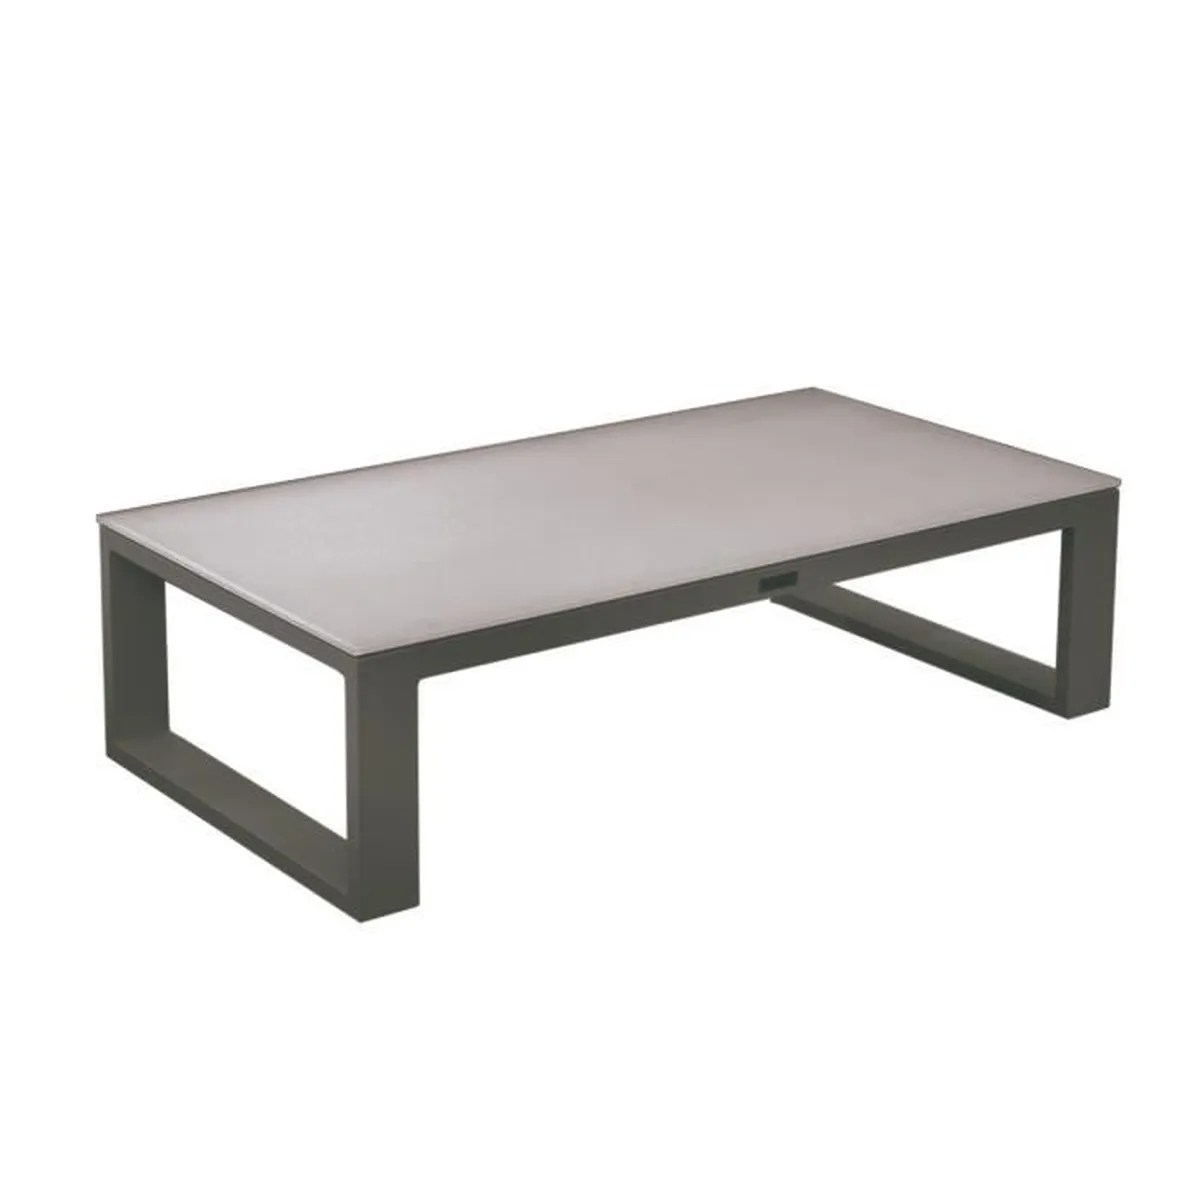 Table Basse Jardin Table Basse En Aluminium Design Jardin And Terrasse Belluno